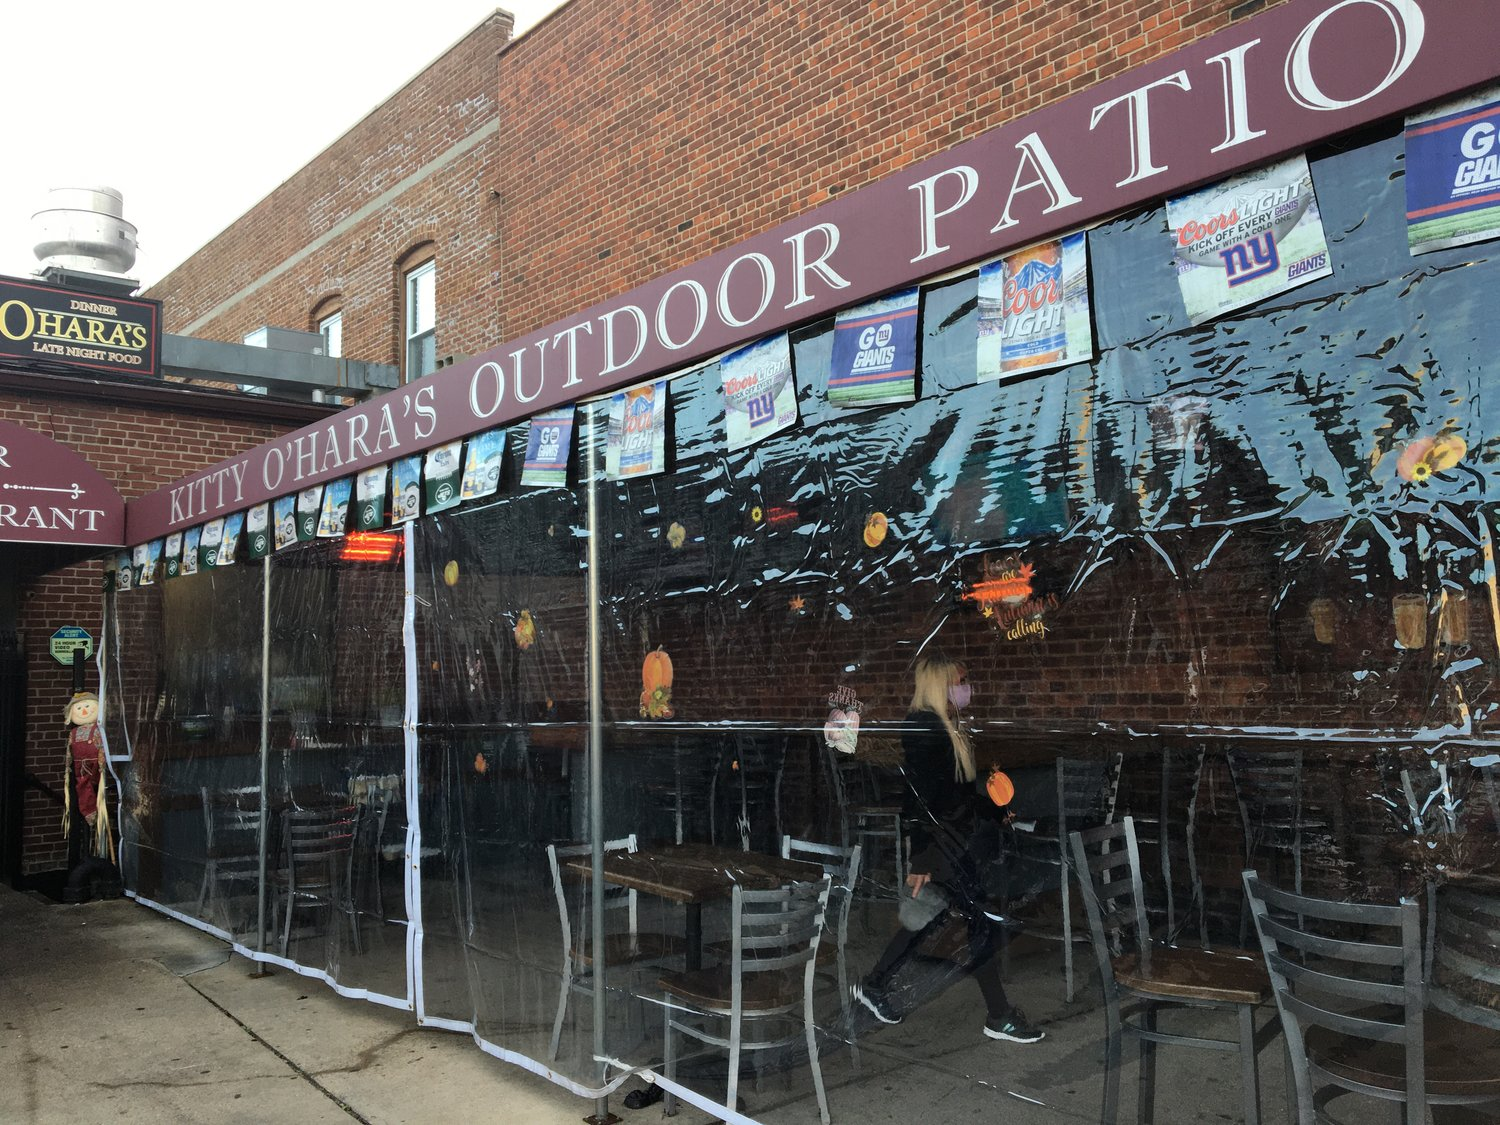 Kitty O'Hara's, on Merrick Road in Baldwin, has hung plastic curtains in the outdoor dining area.